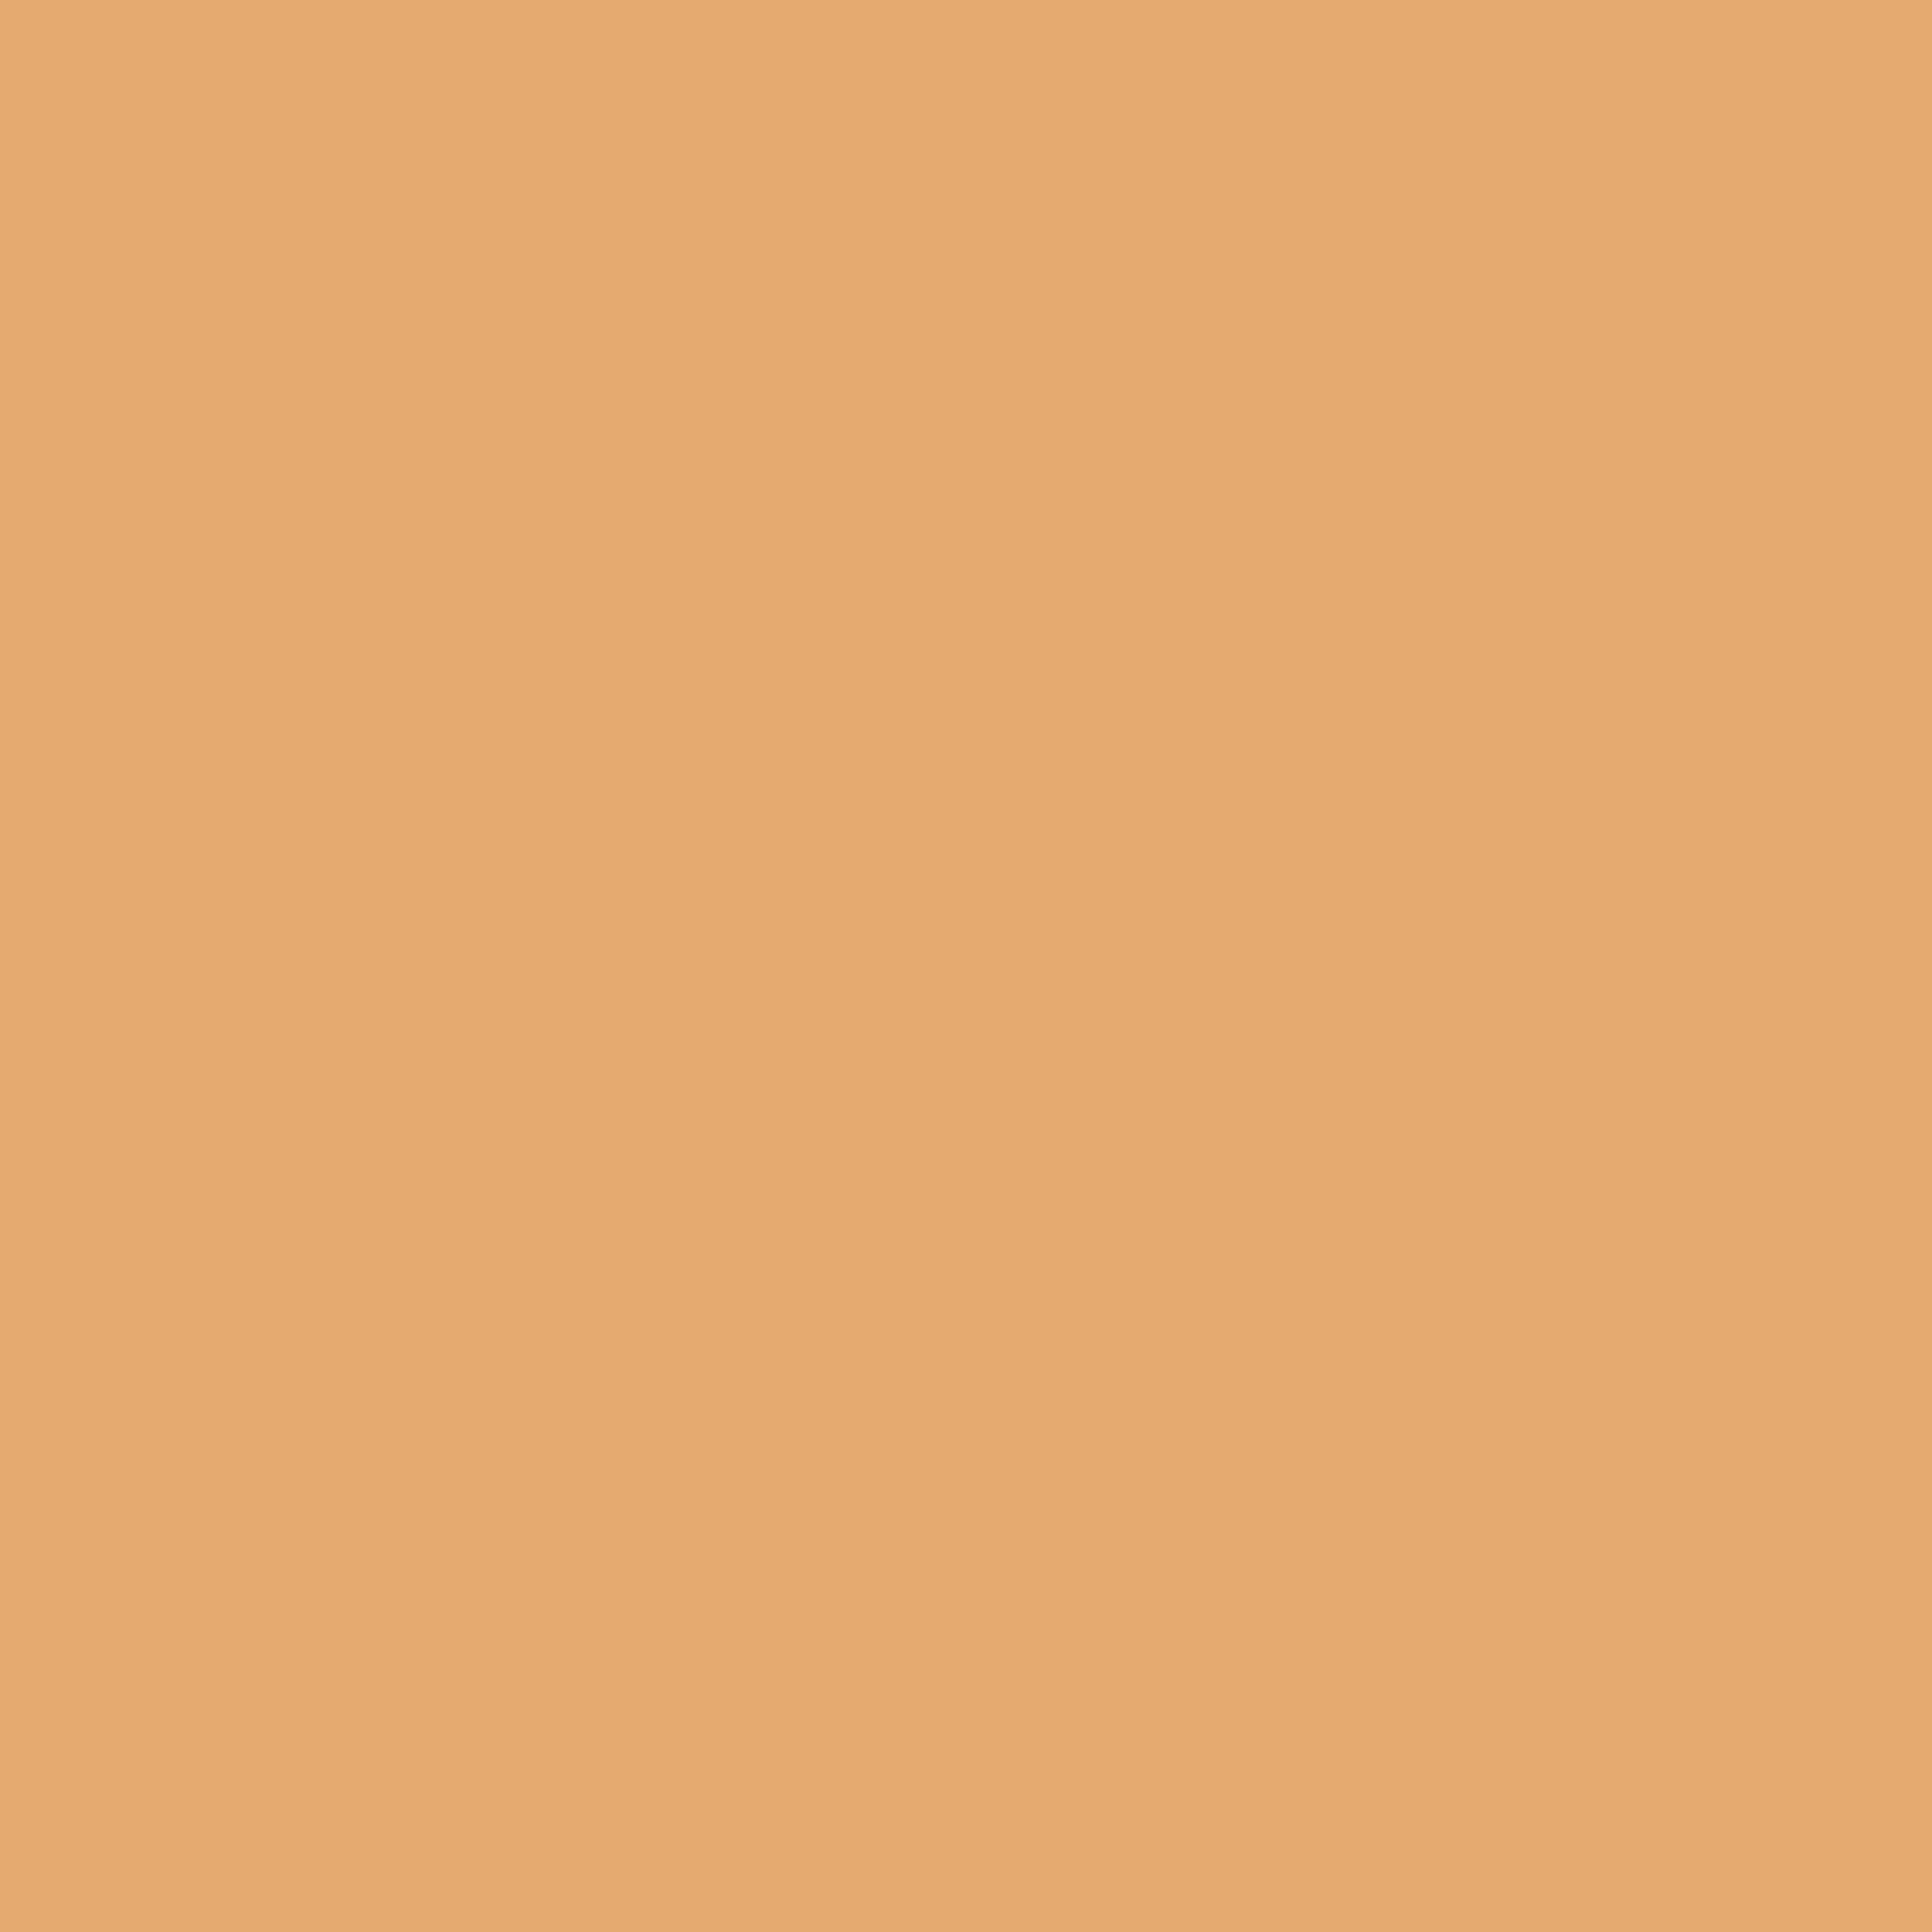 3600x3600 Fawn Solid Color Background